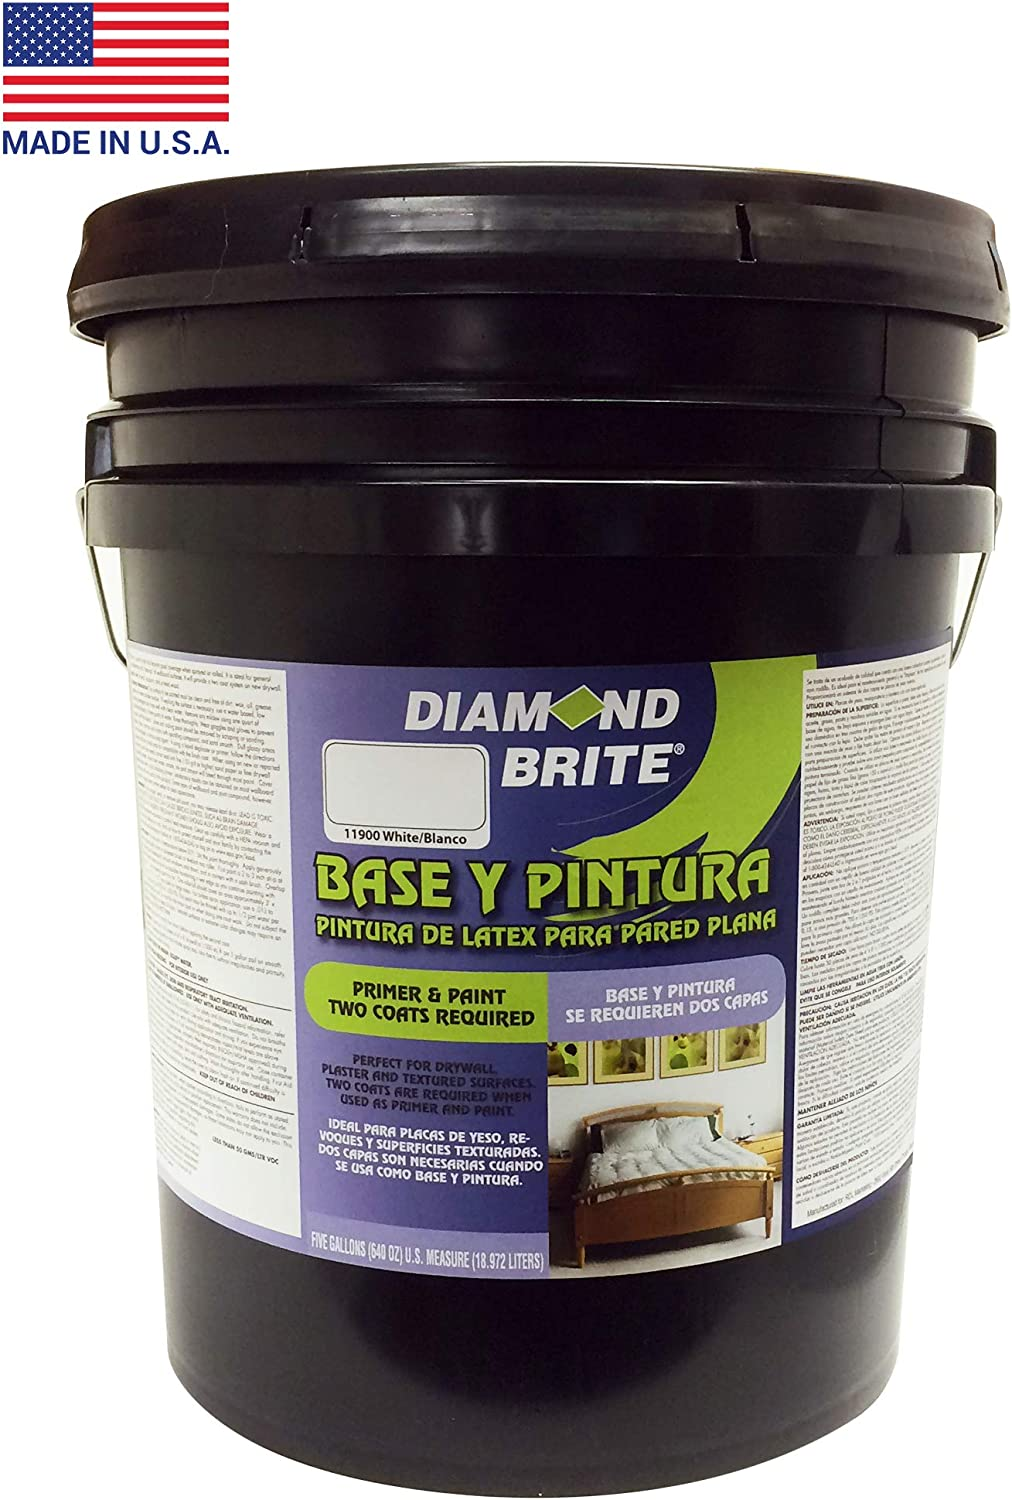 Diamond Brite Paint 11900 5 Flat Paint And Primer In One 5 Gallon White House Paint Amazon Com